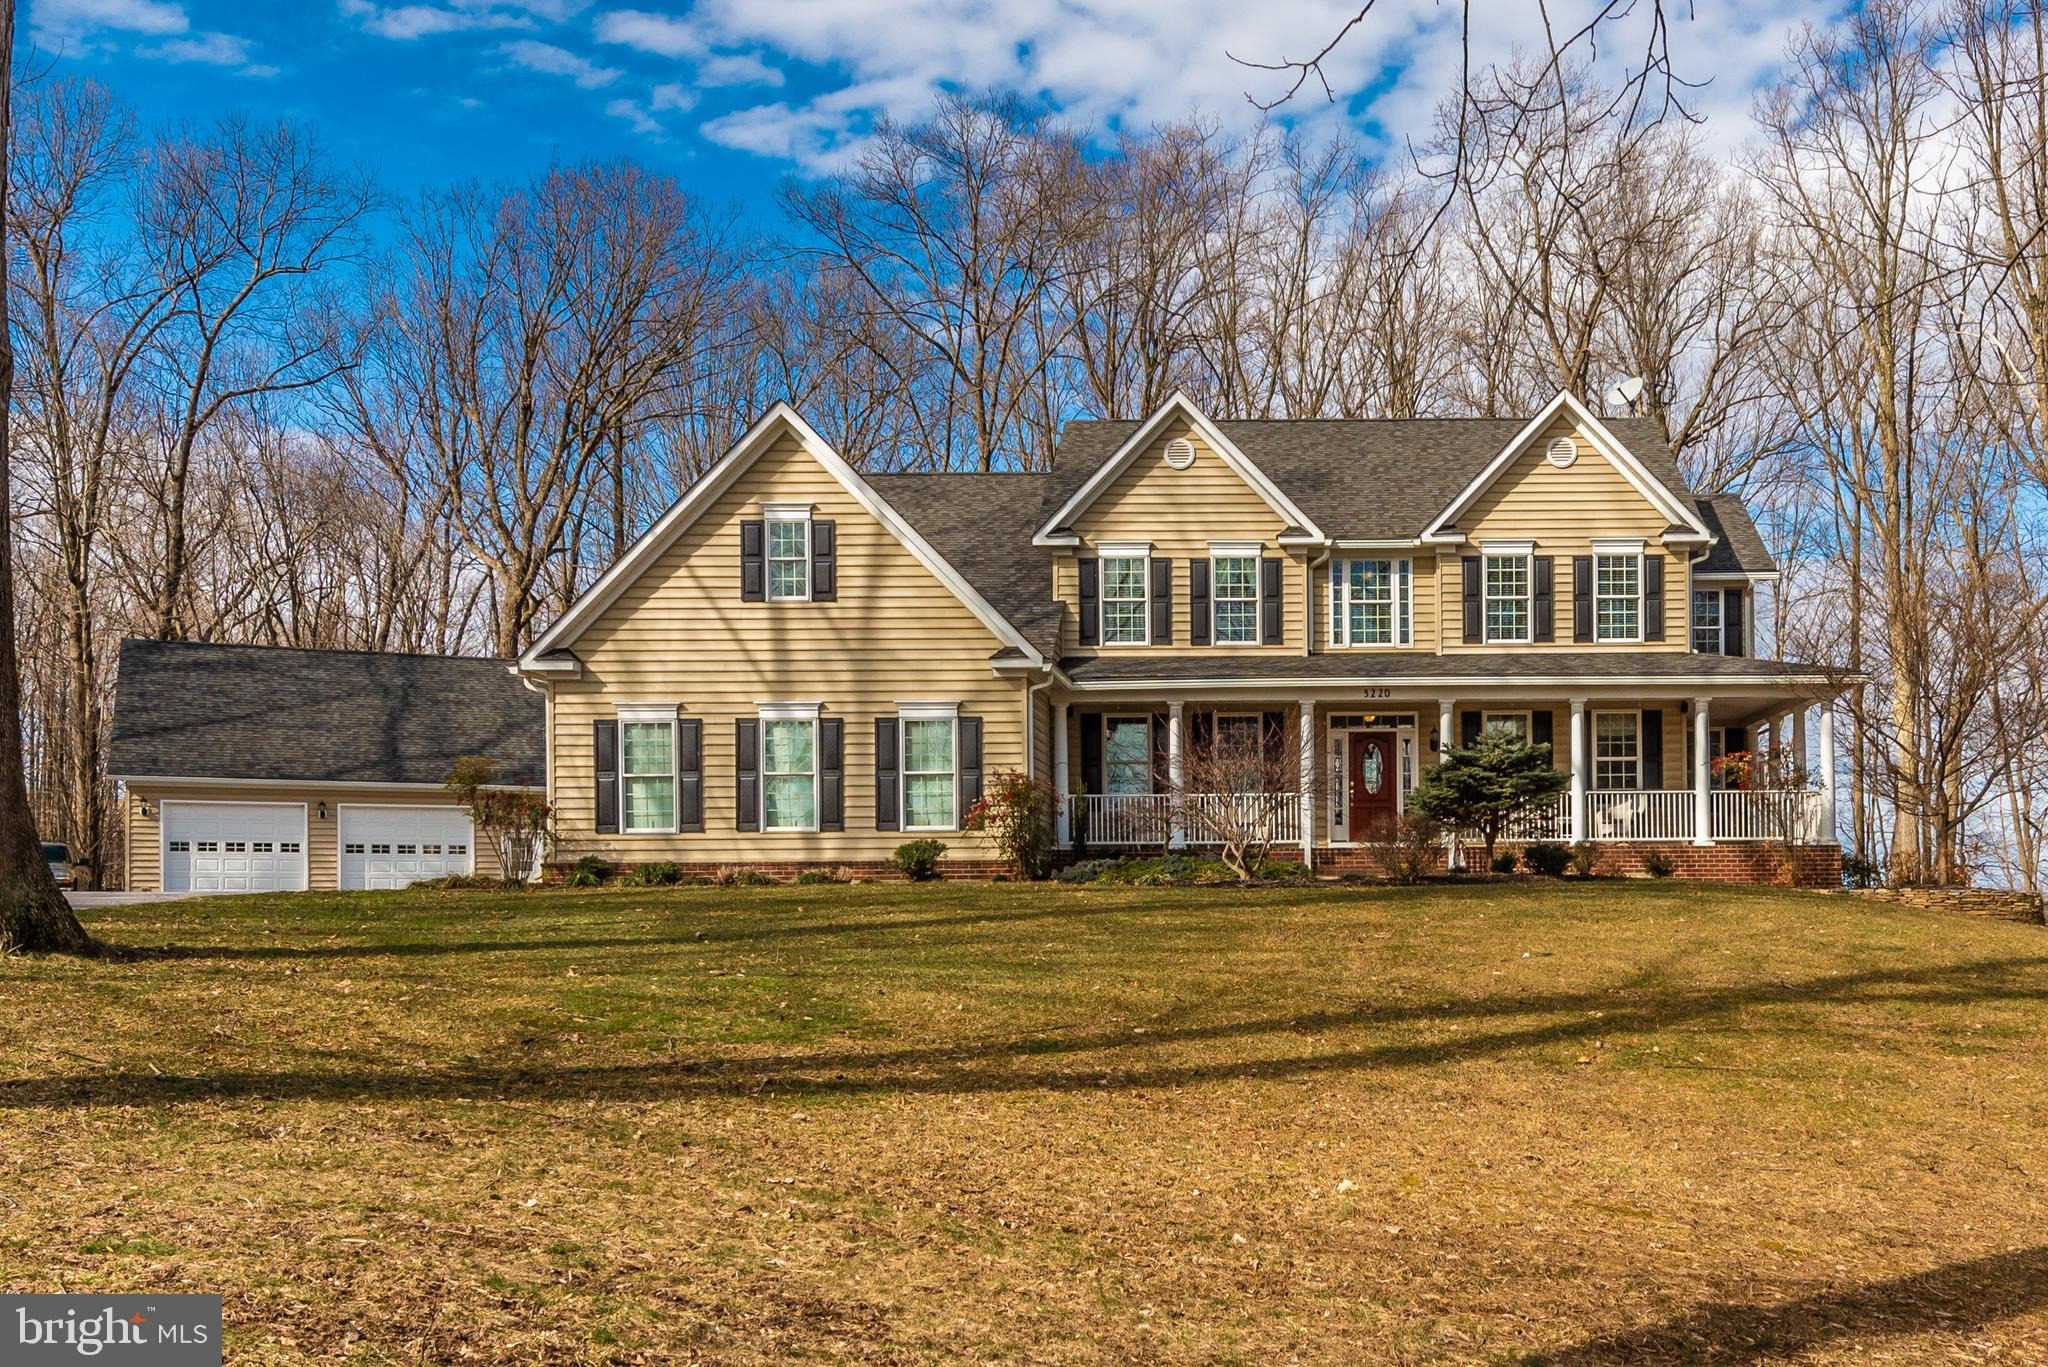 3220 SIDETRACKED DRIVE, NEW WINDSOR, MD 21776